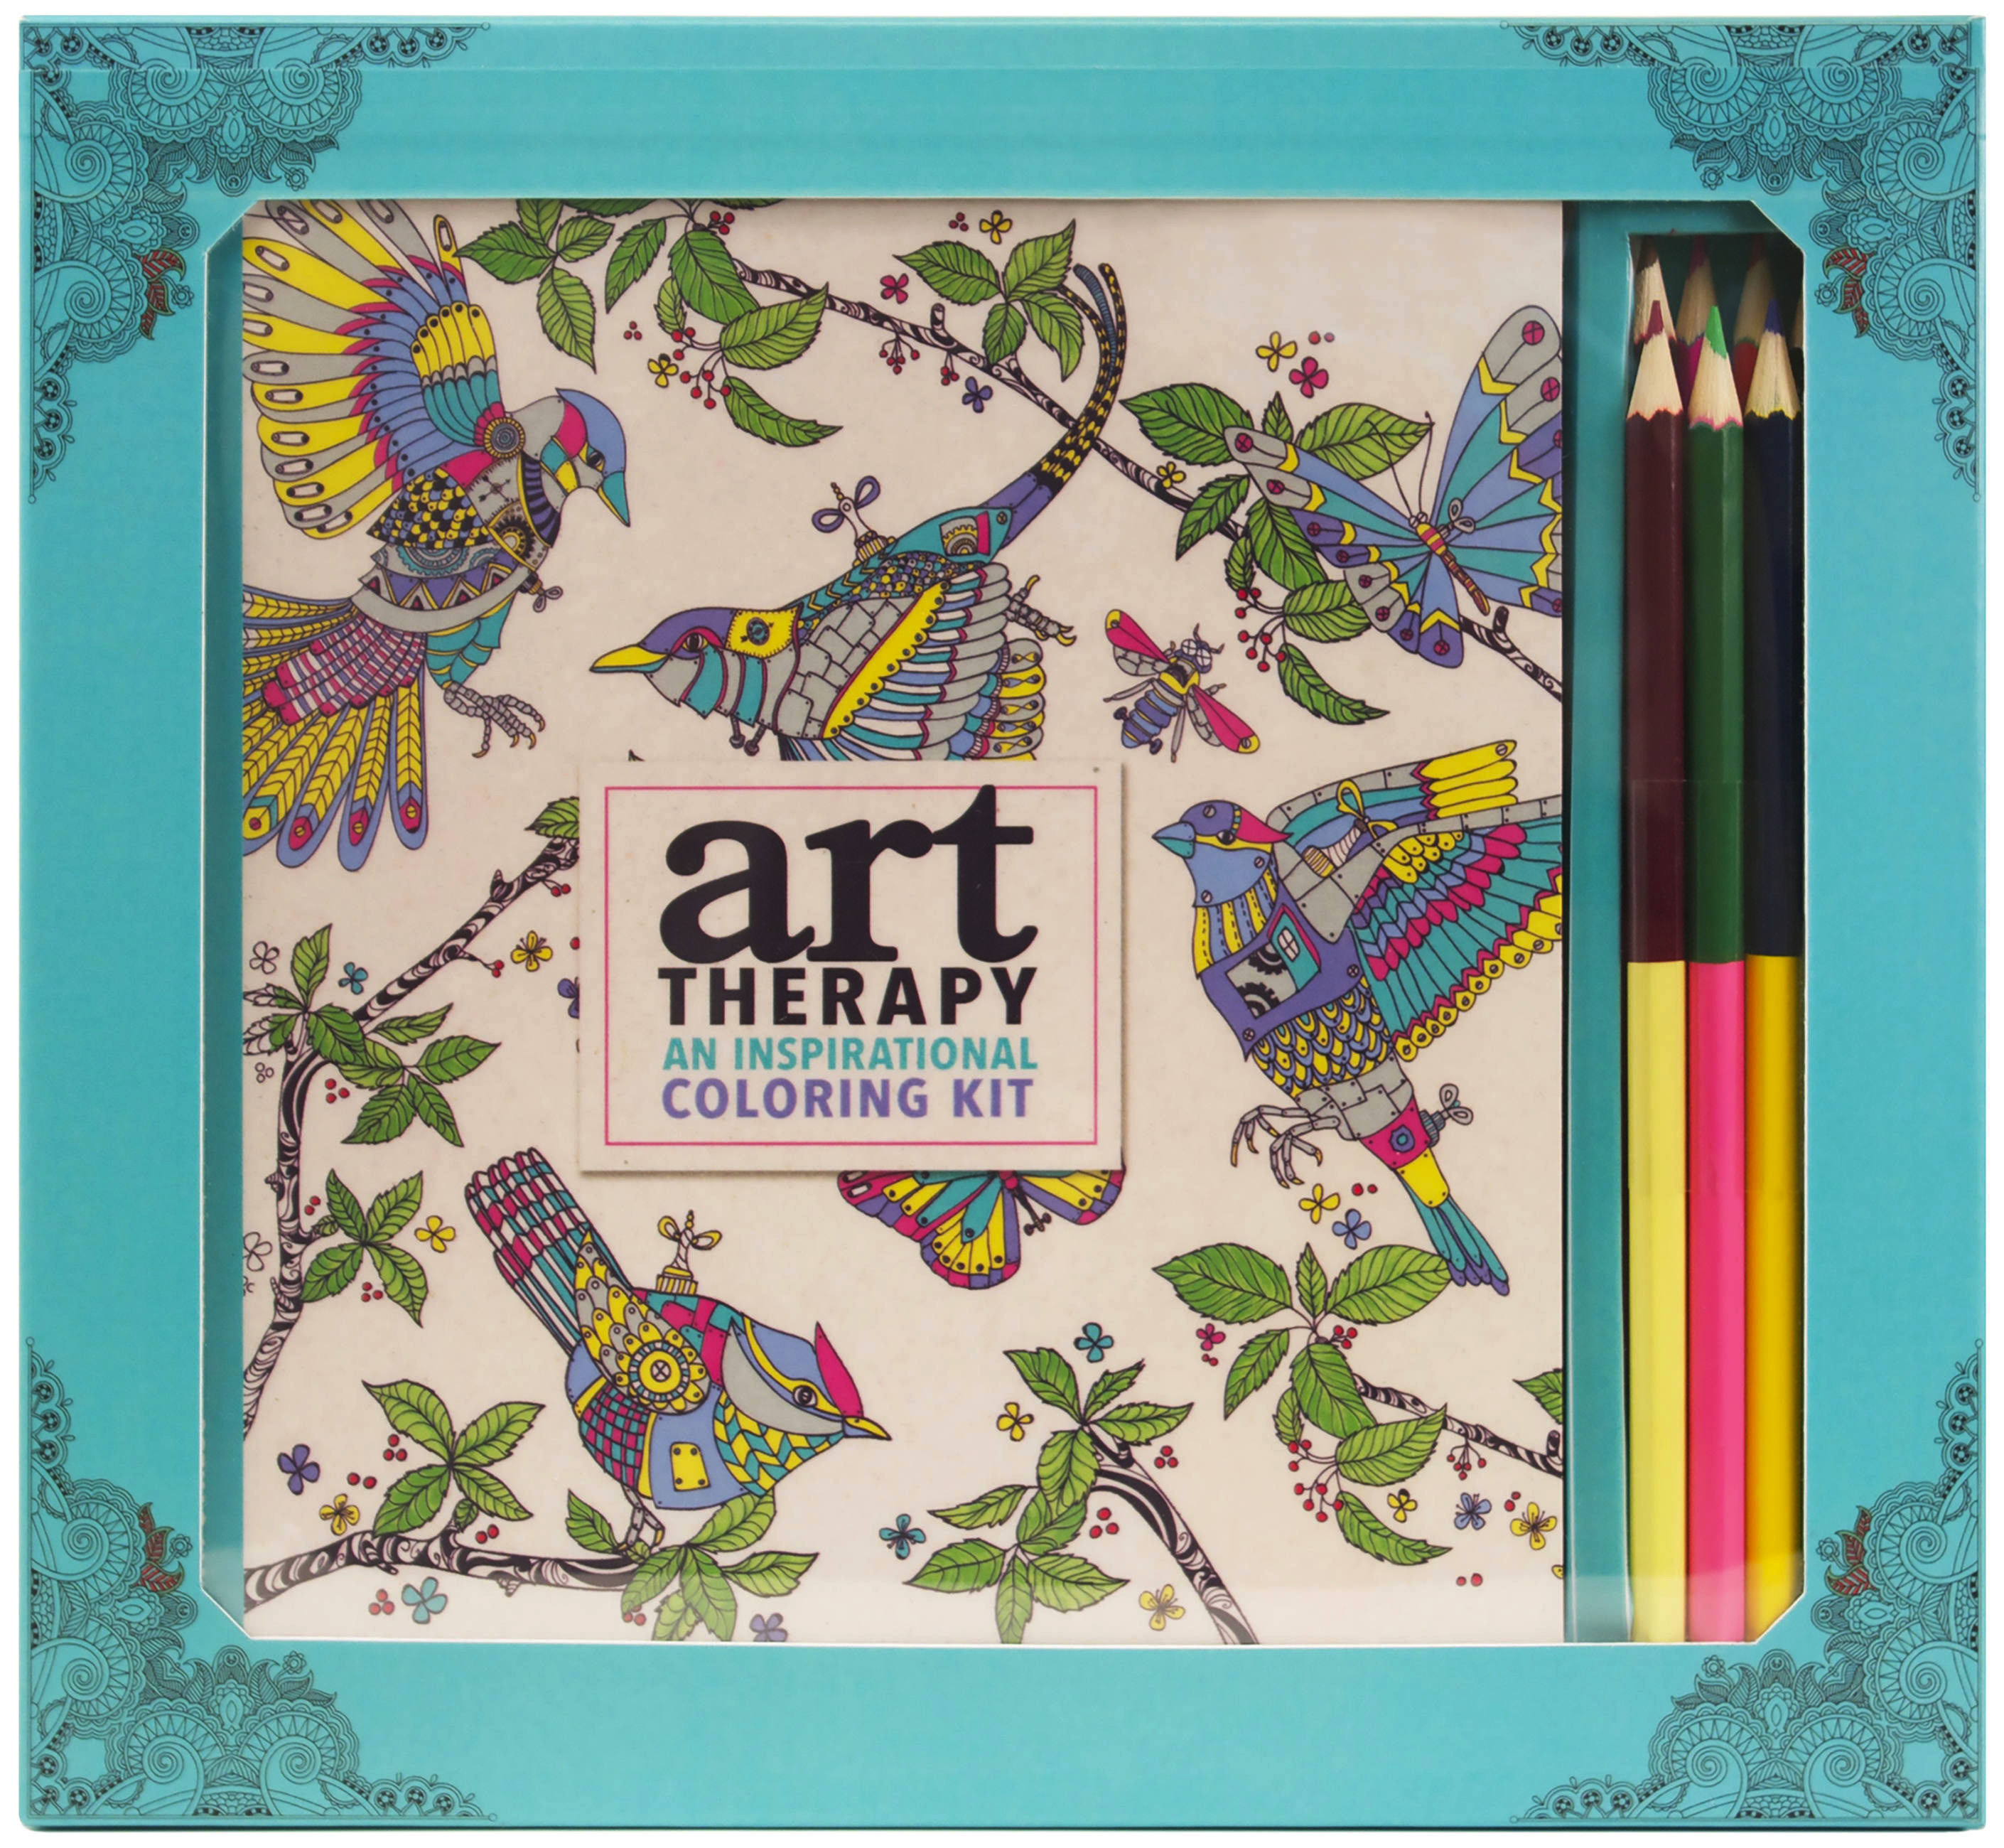 Art therapy coloring book and pencils - Art Therapy An Inspirational Coloring Kit Deluxe Kit With Pencils